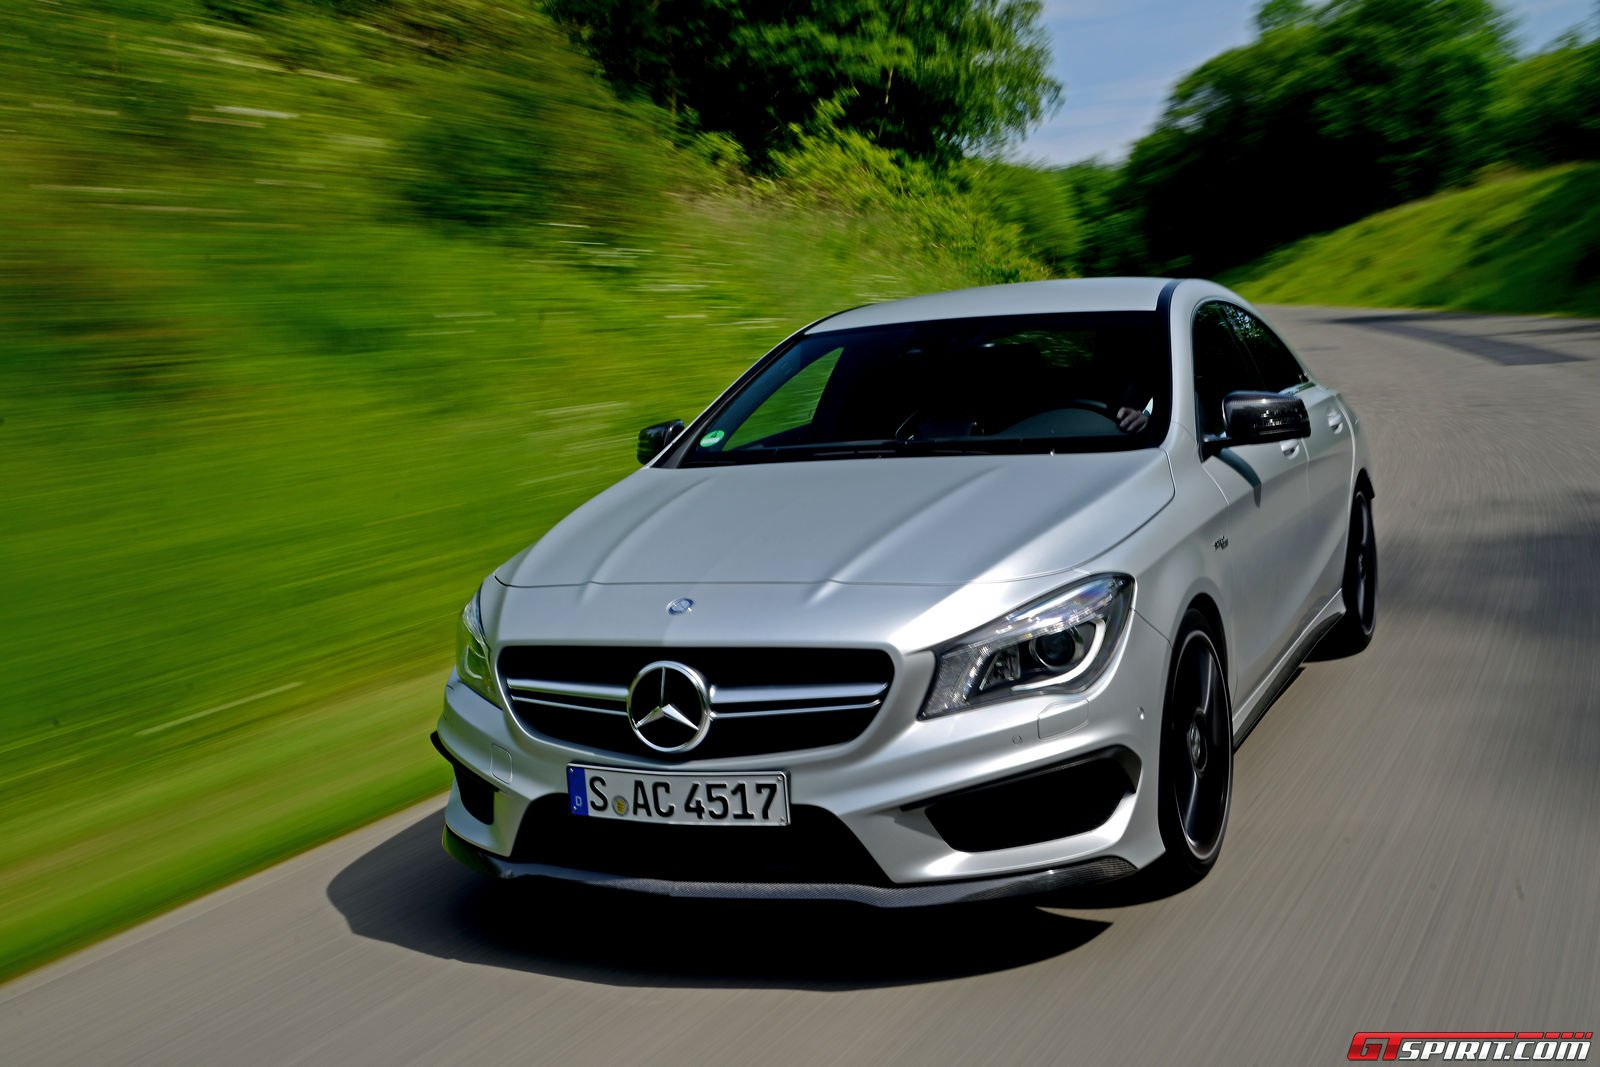 Road test 2014 mercedes benz cla 45 amg gtspirit for Mercedes benz amg cla 45